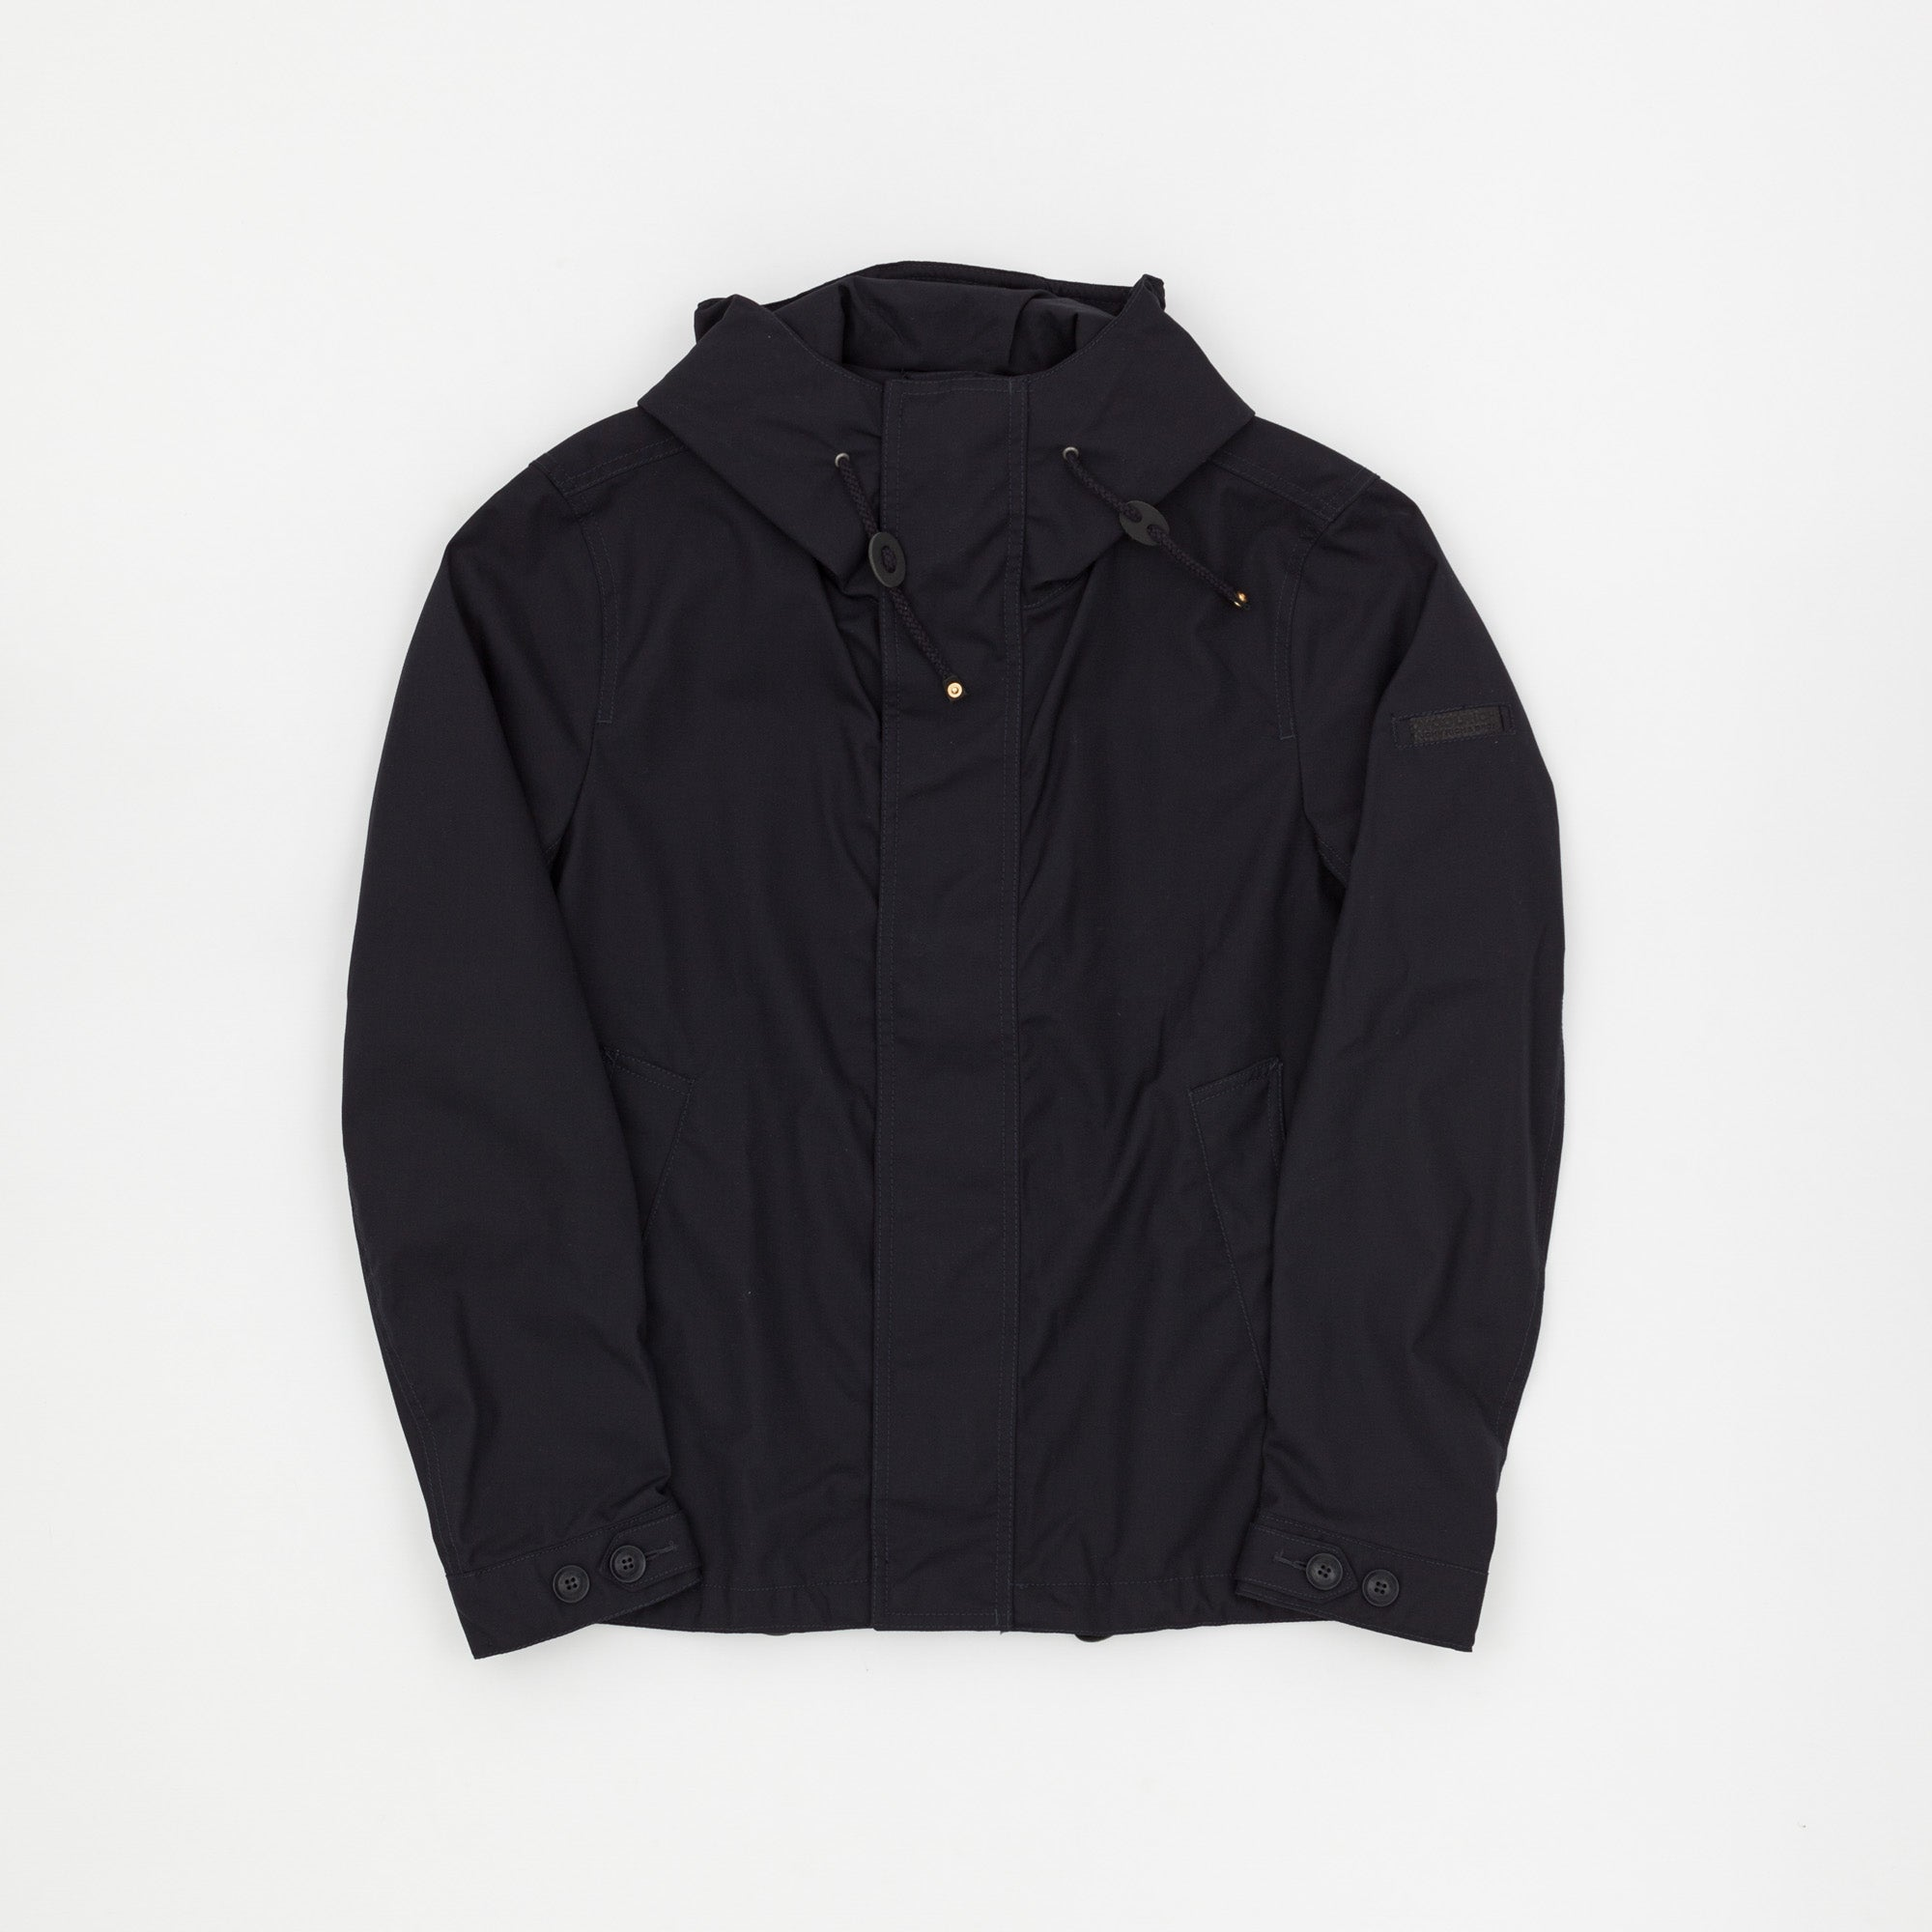 Woolrich Teton Cotton Jacket